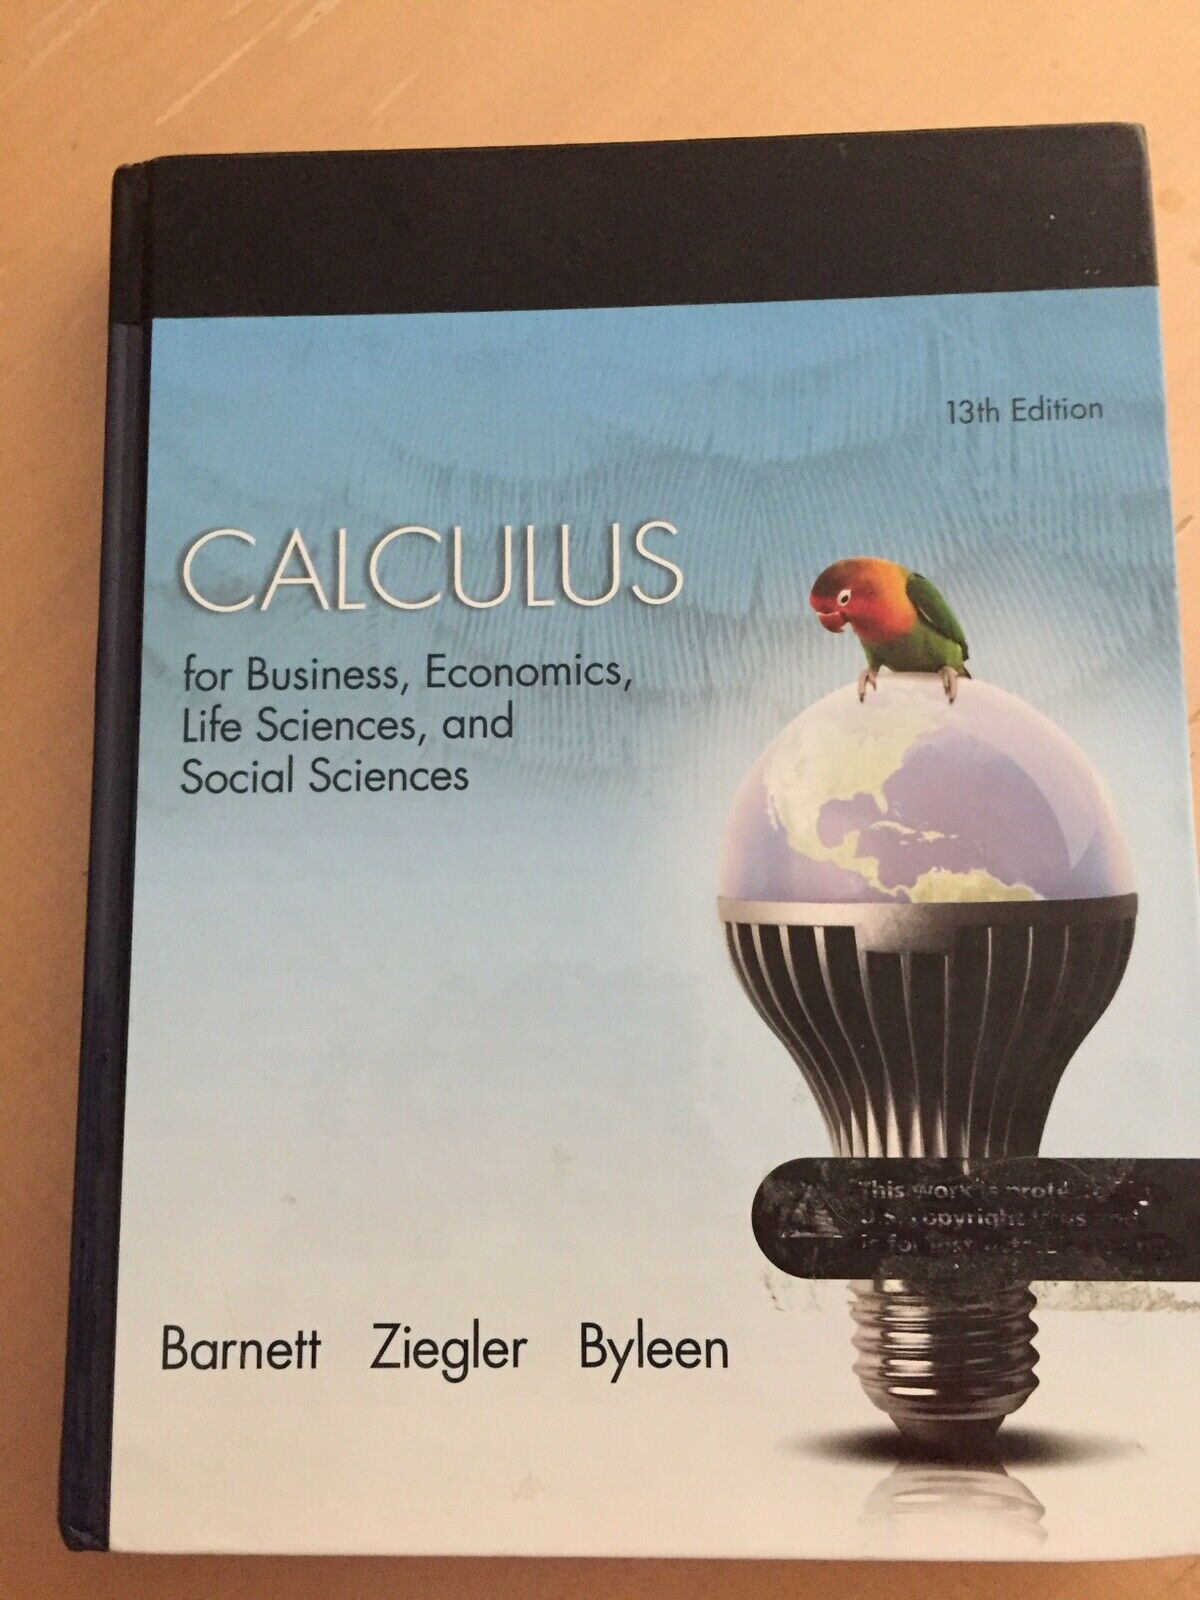 Calculus For Business Economics Life Sciences And Social Sciences By Michael R Ziegler Raymond A Barnett And Karl E Byleen 2014 Hardcover For Sale Online Ebay